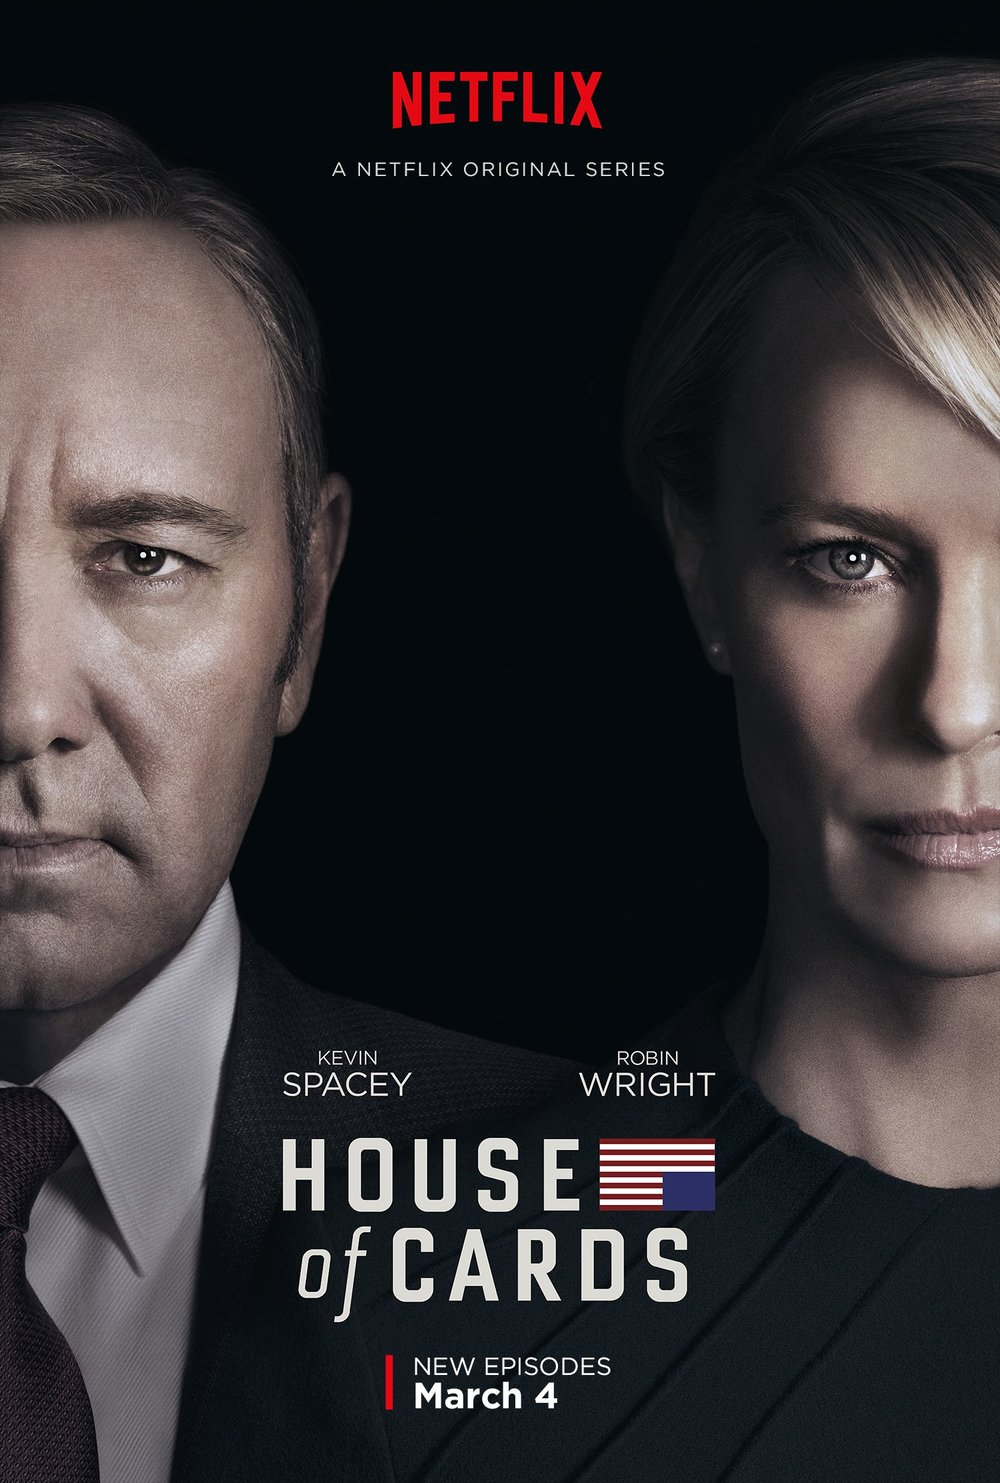 House of Cards Season 4-poster 2